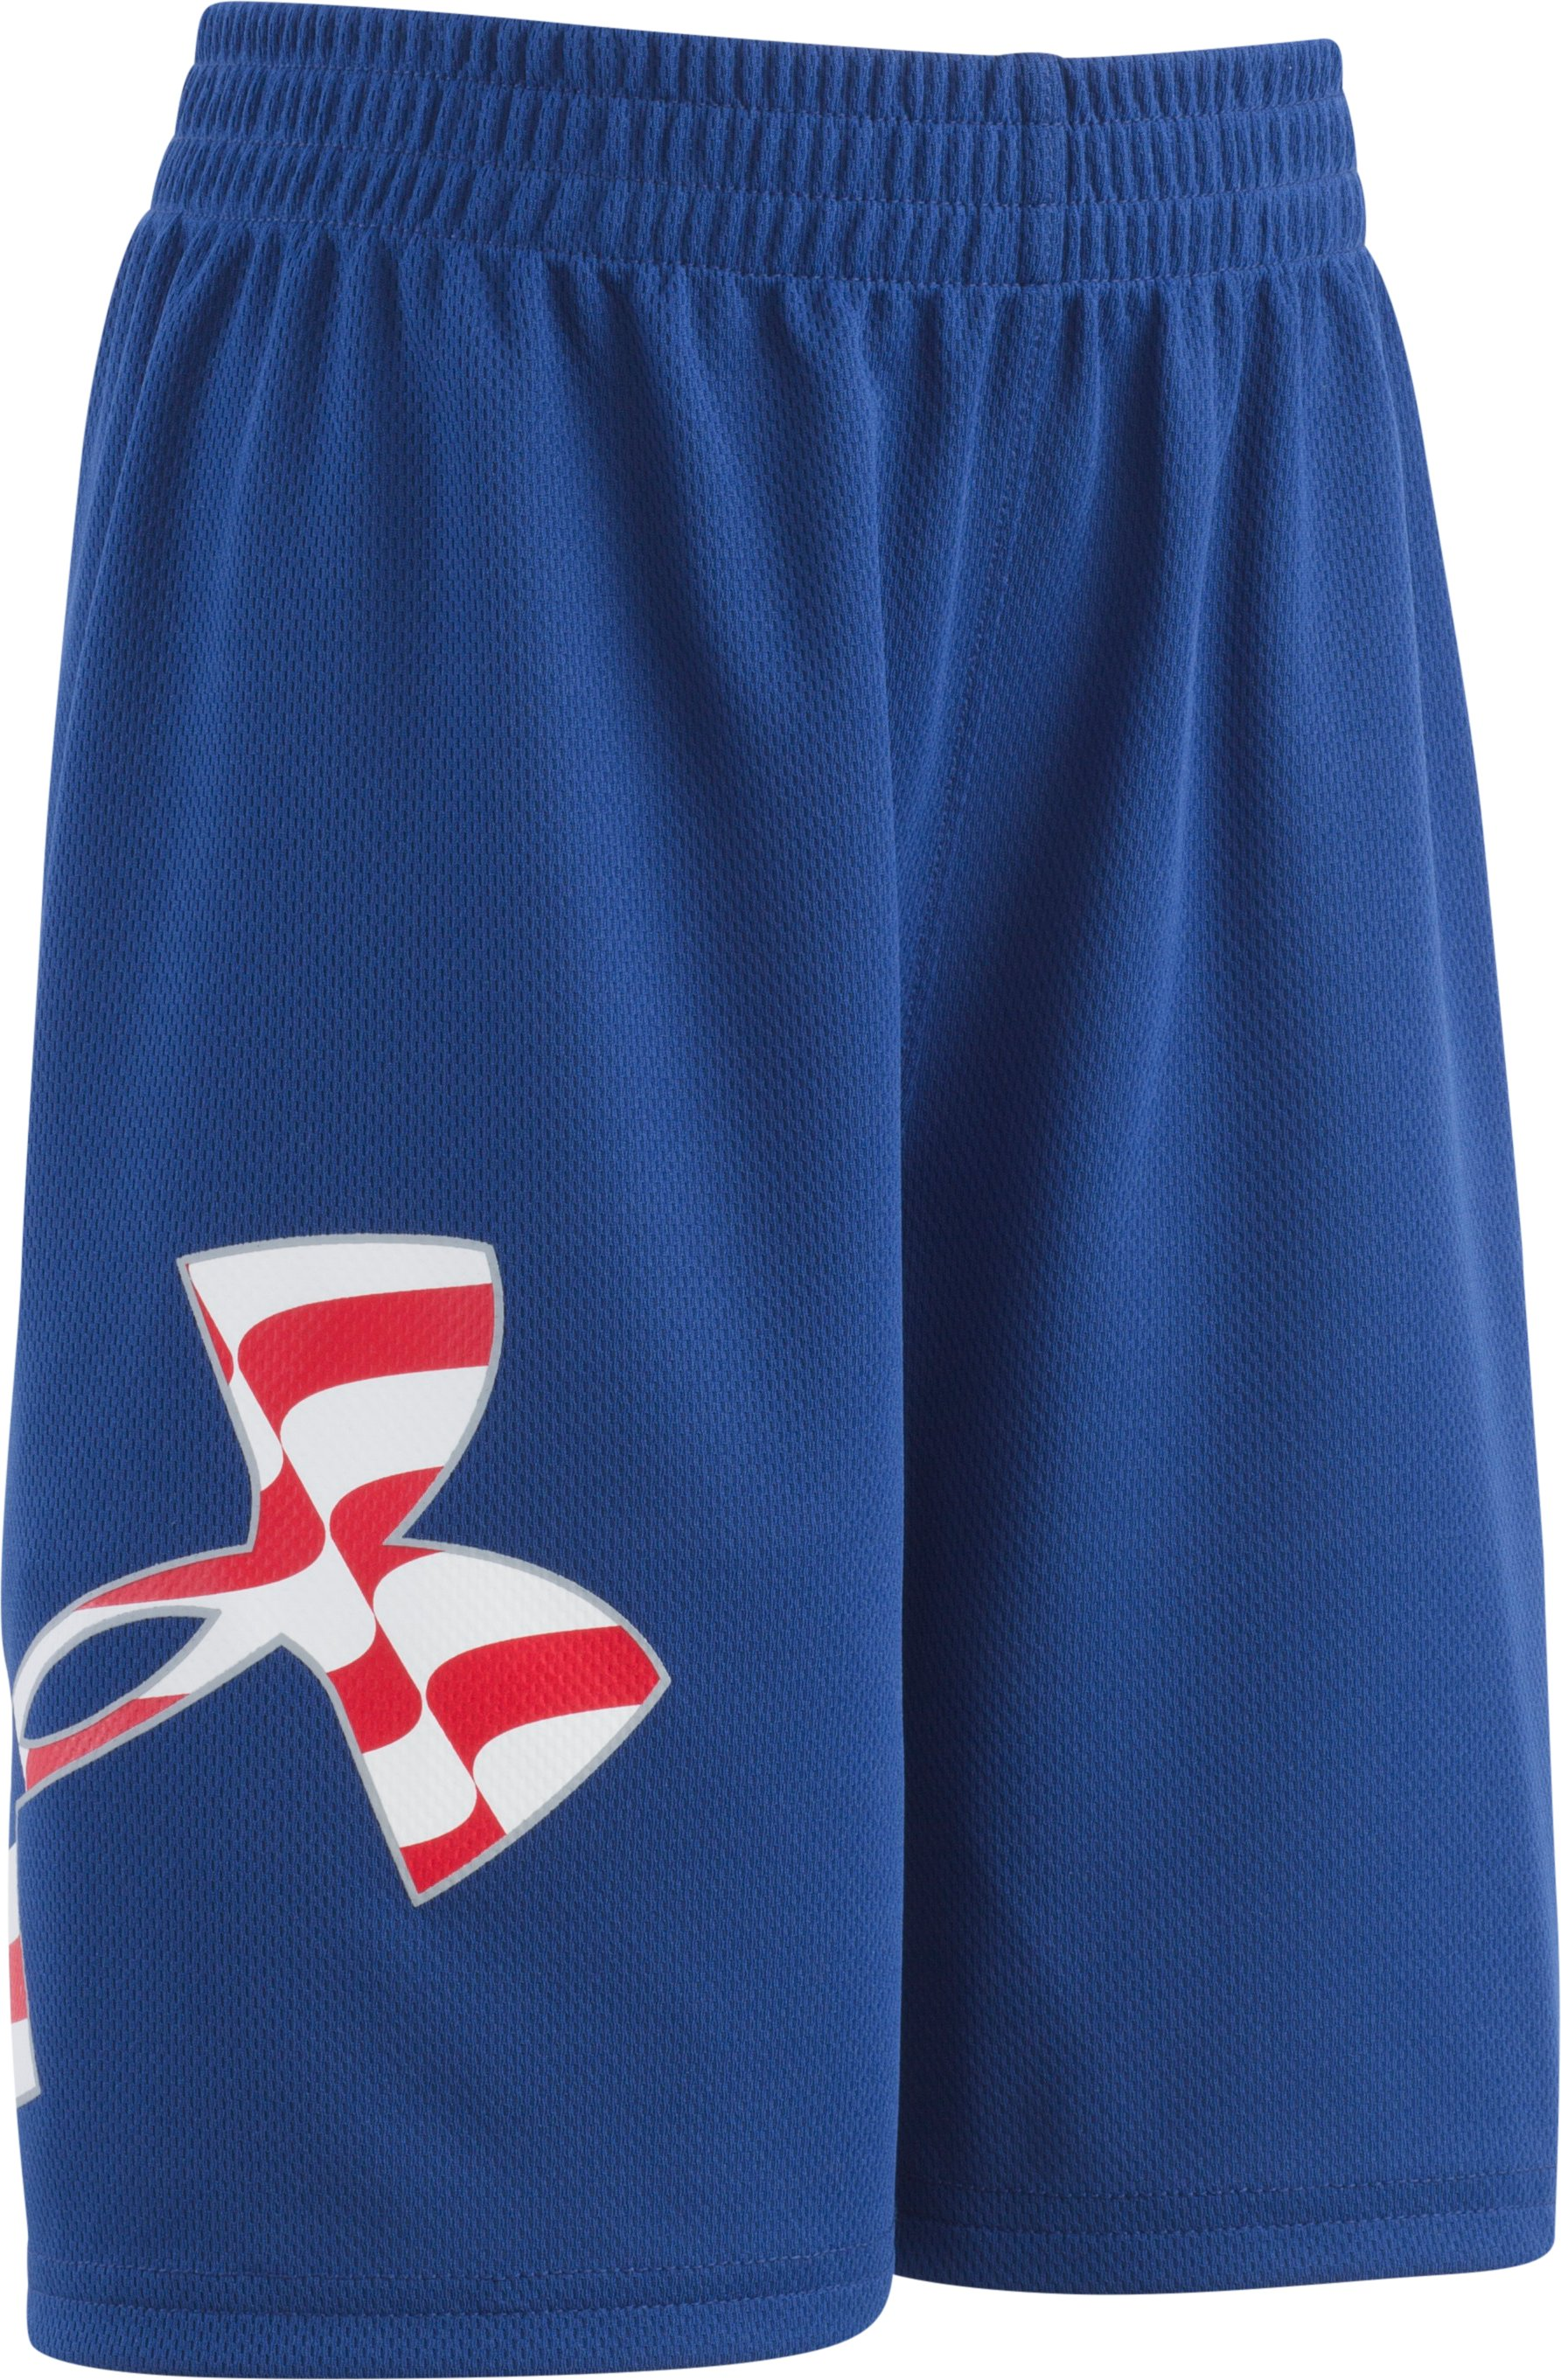 Boys' Toddler UA Big Logo Americana  Shorts, AMERICAN BLUE